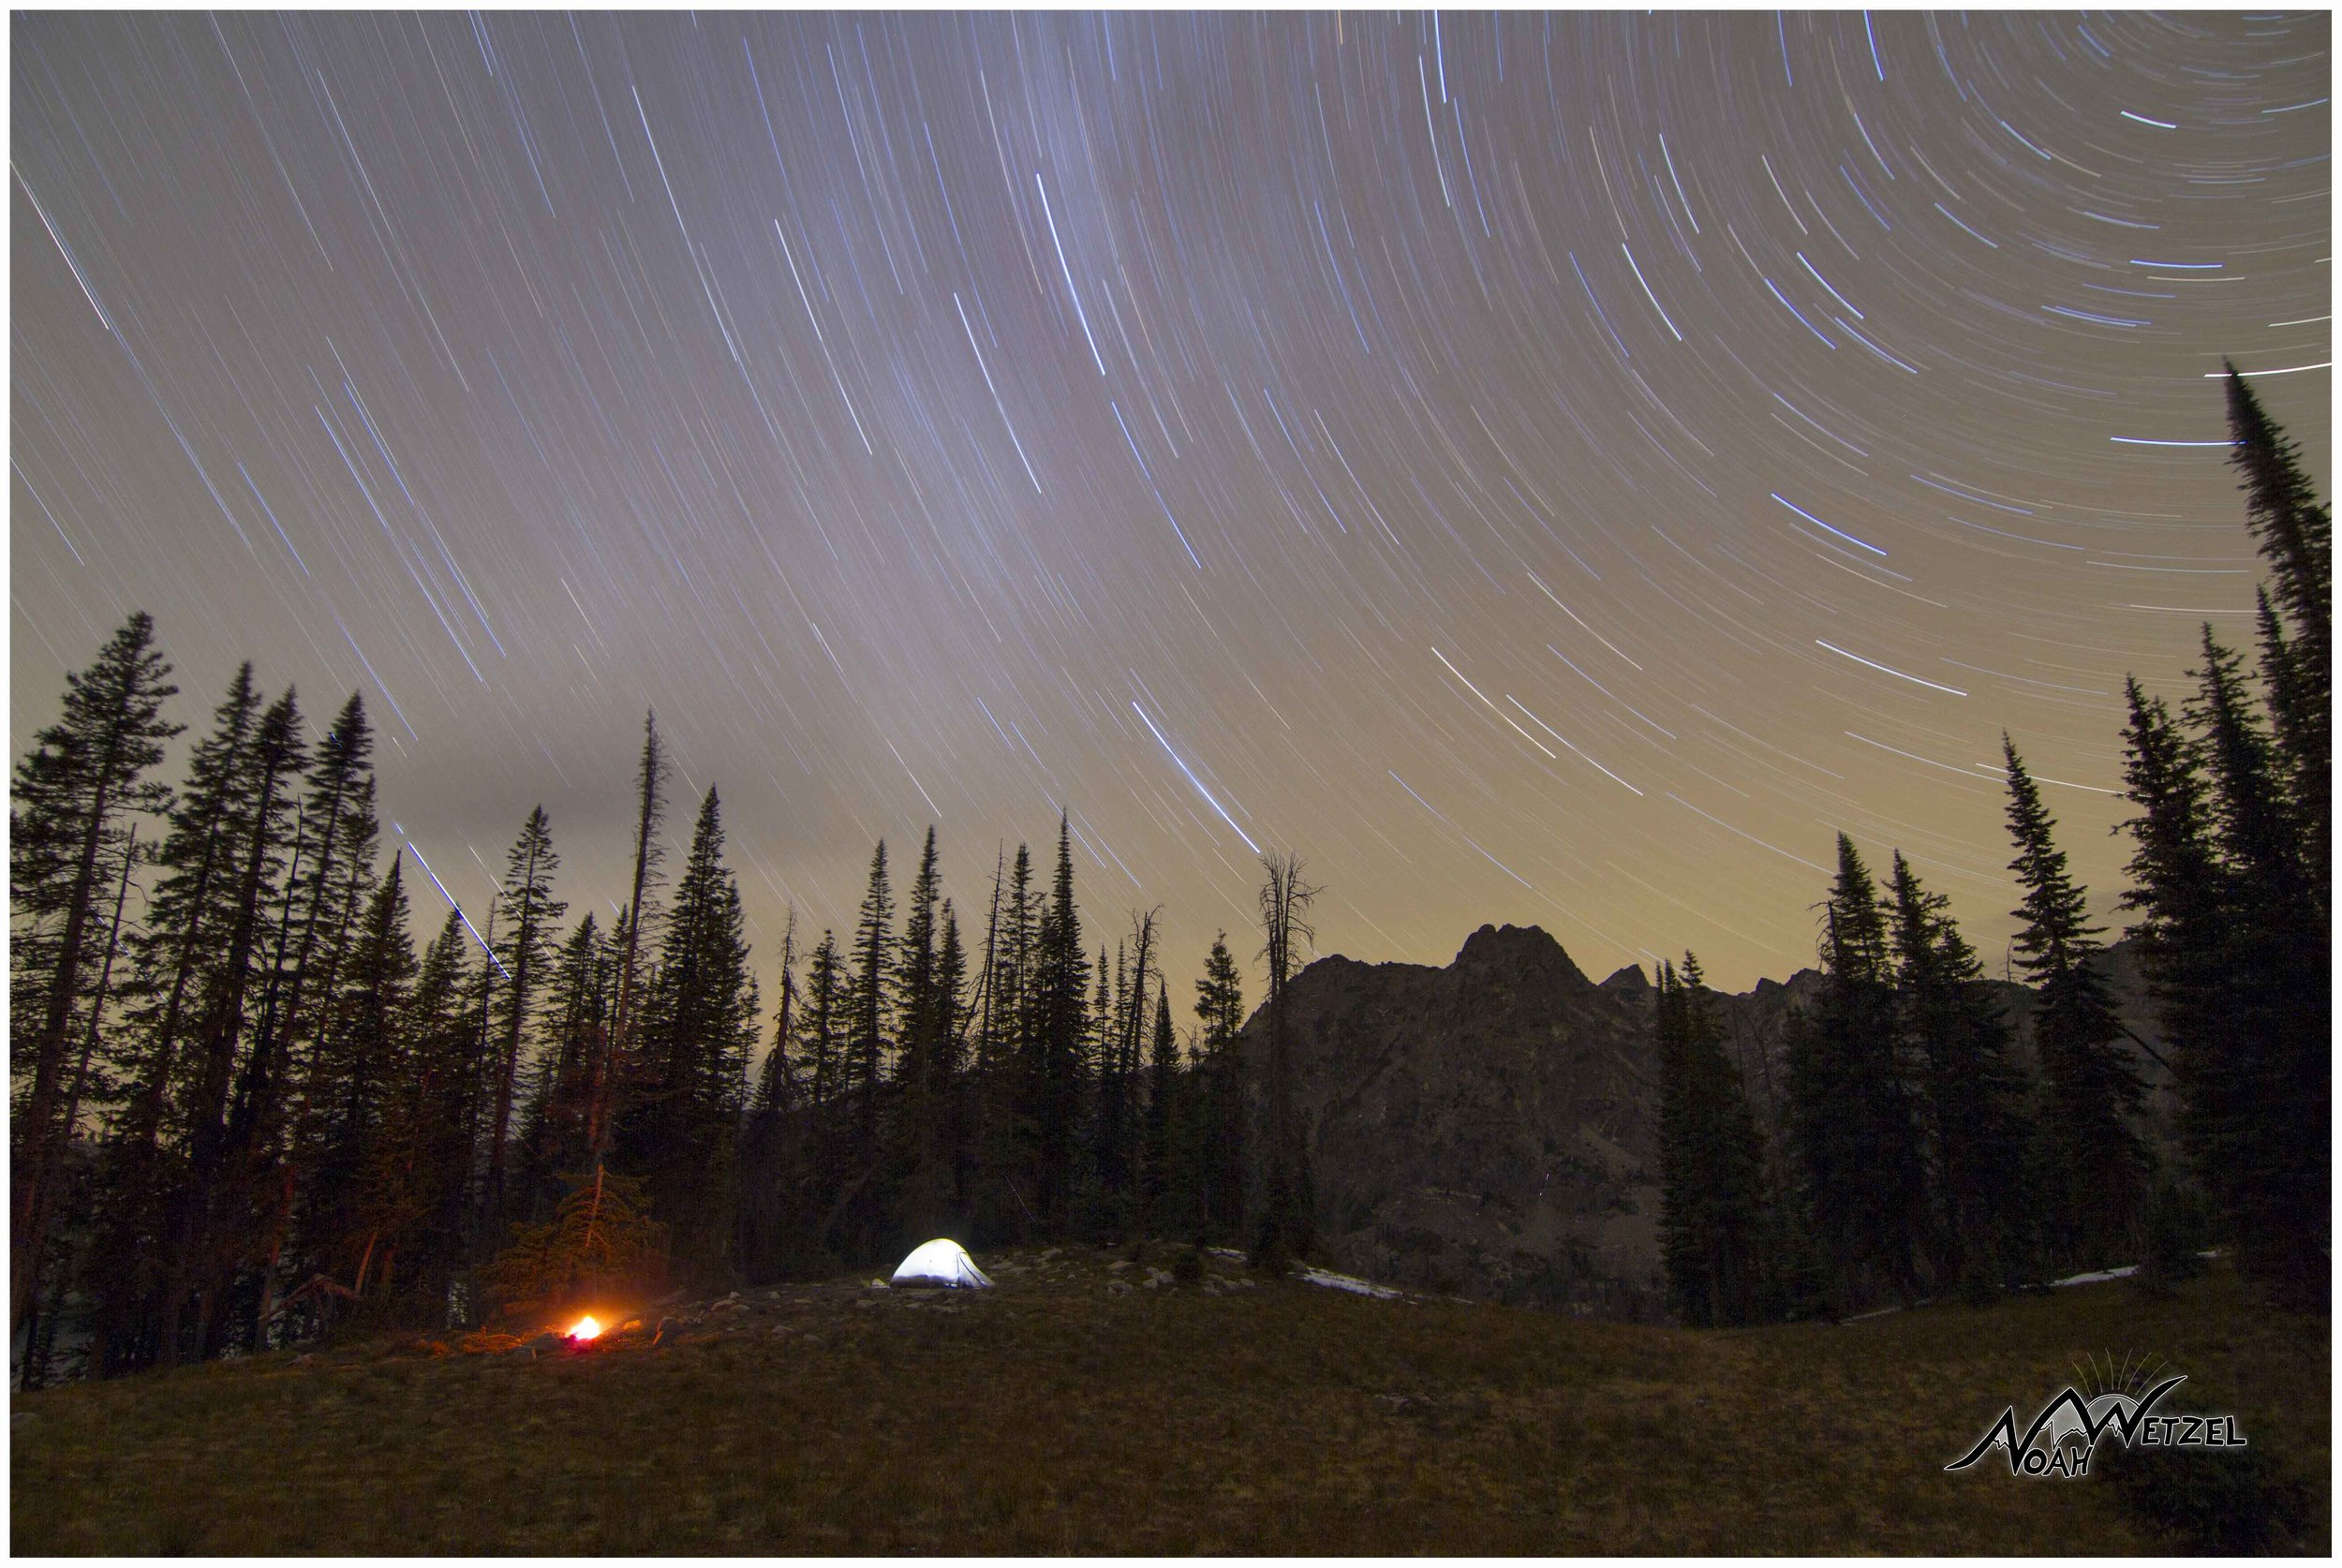 Camping above Gilpin Lake in the Mount Zirkel Wilderness